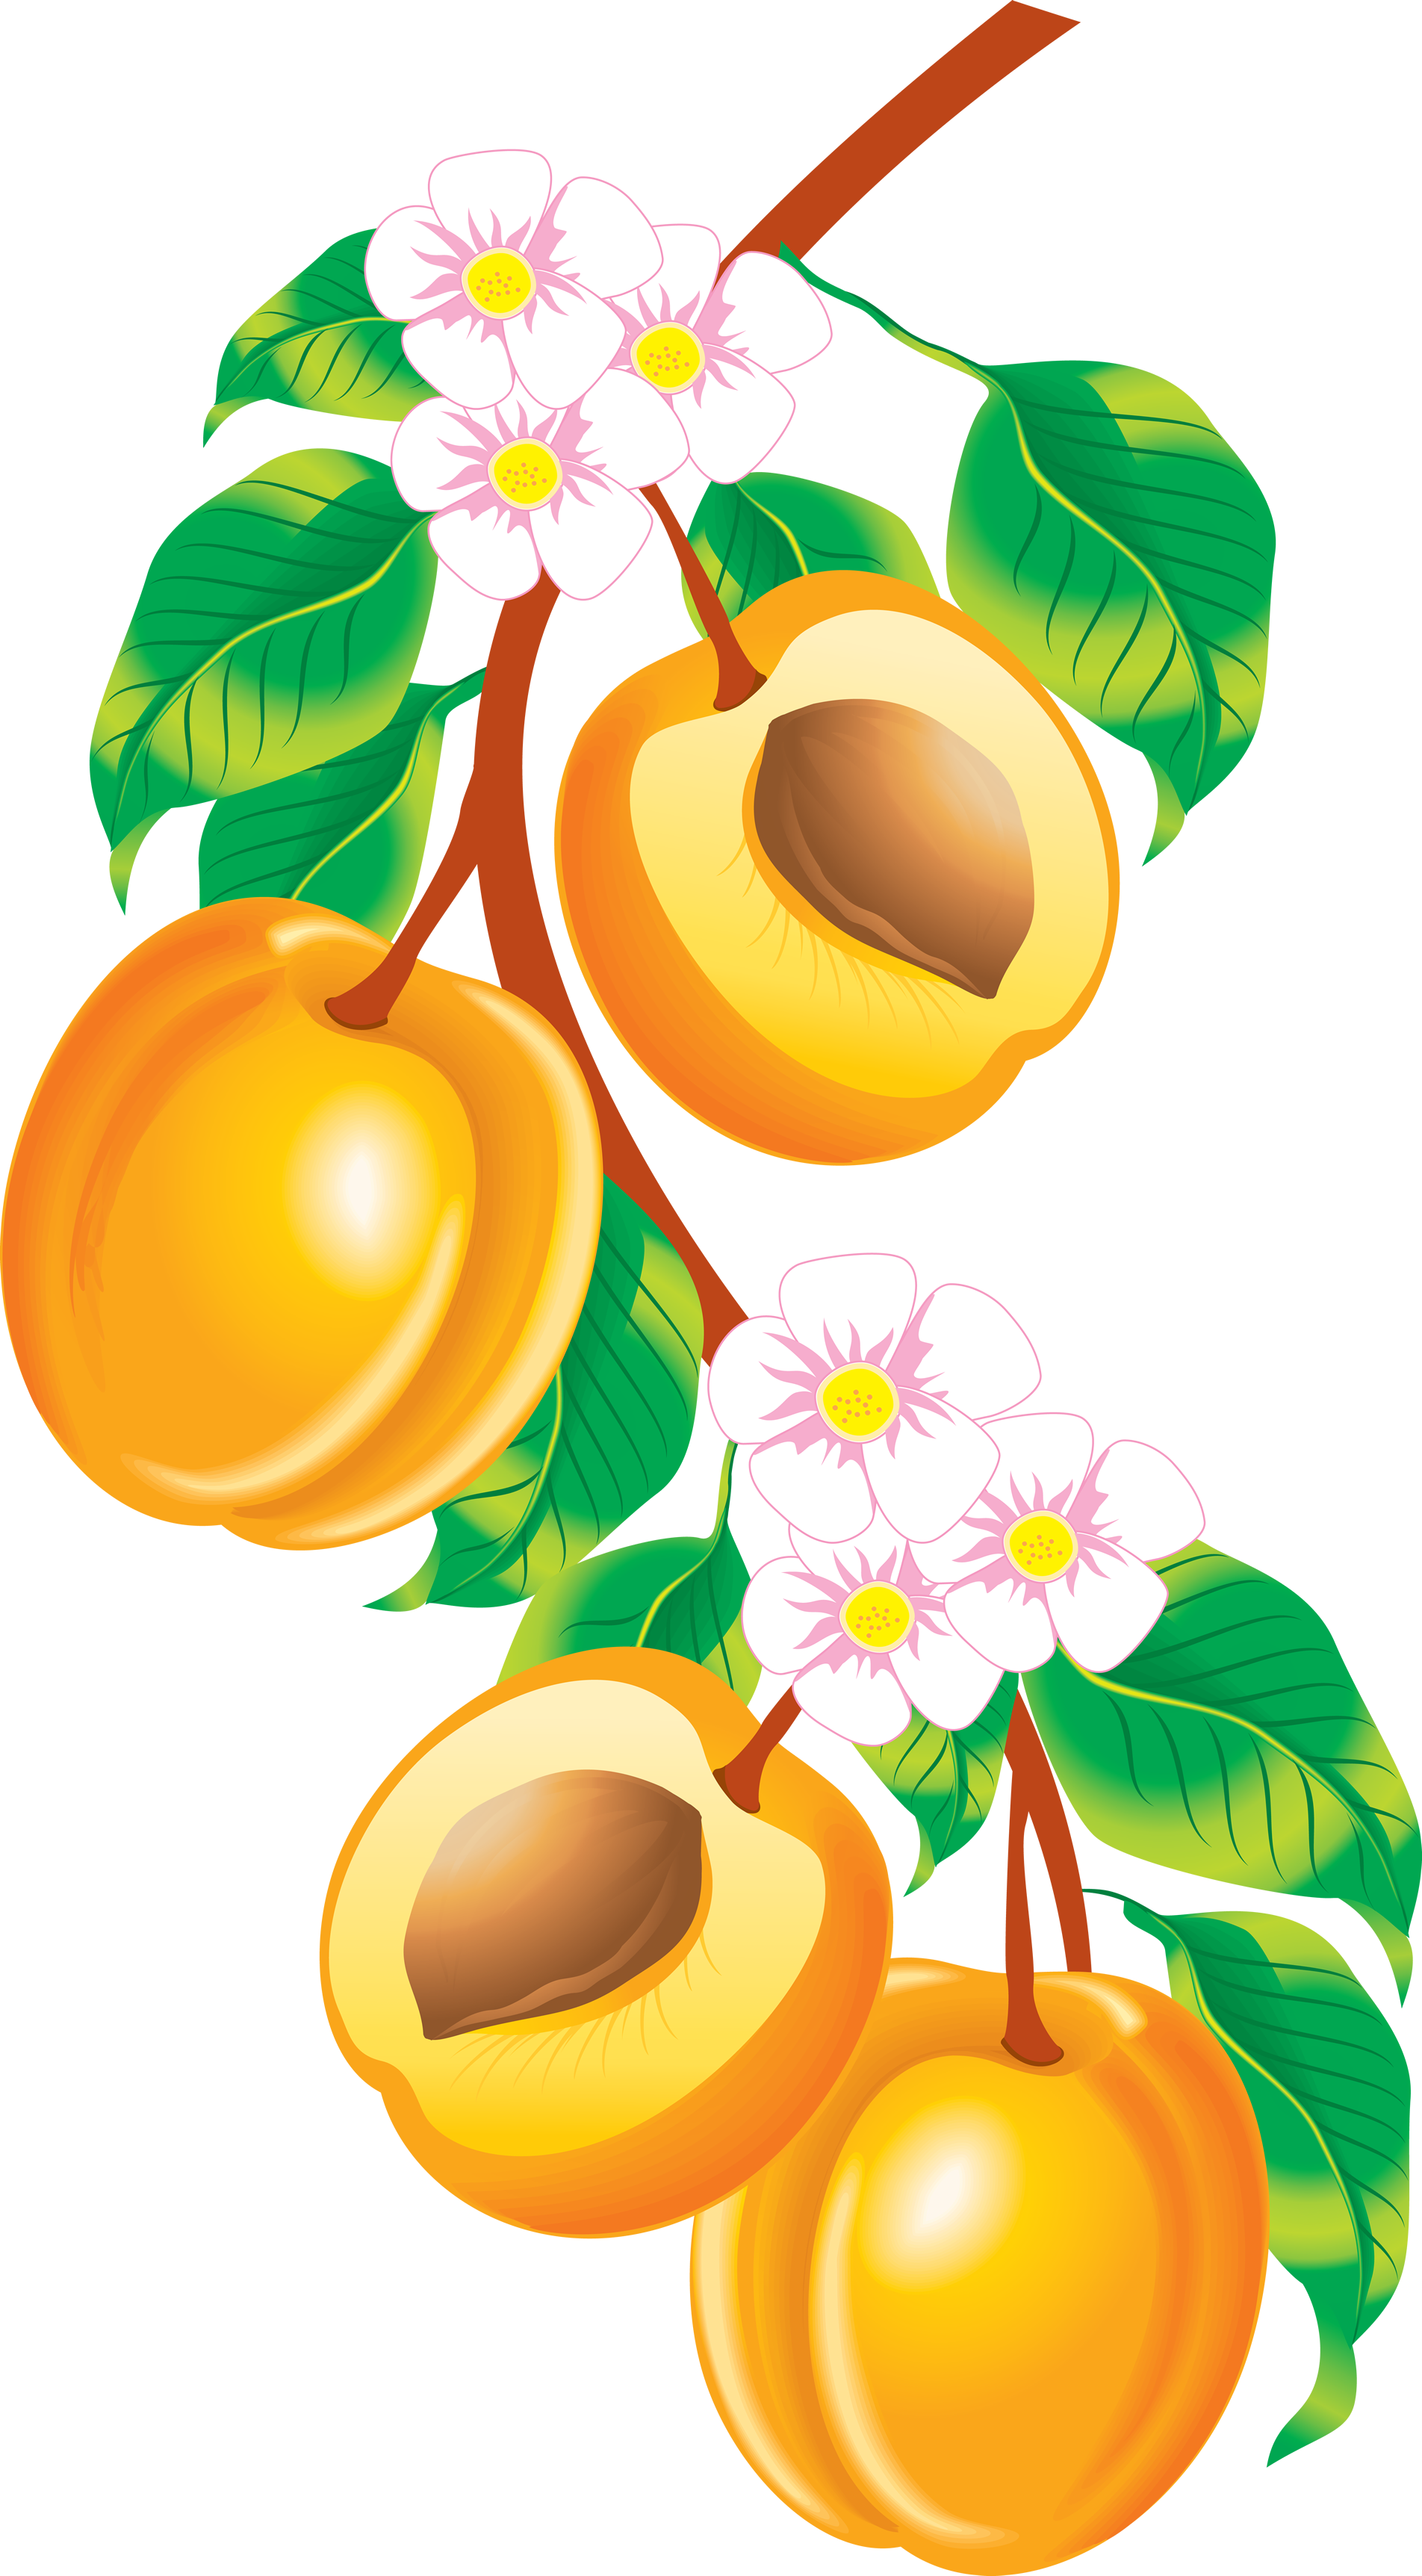 1904x3449 Peach Png Image, Free Download Peach Pictures